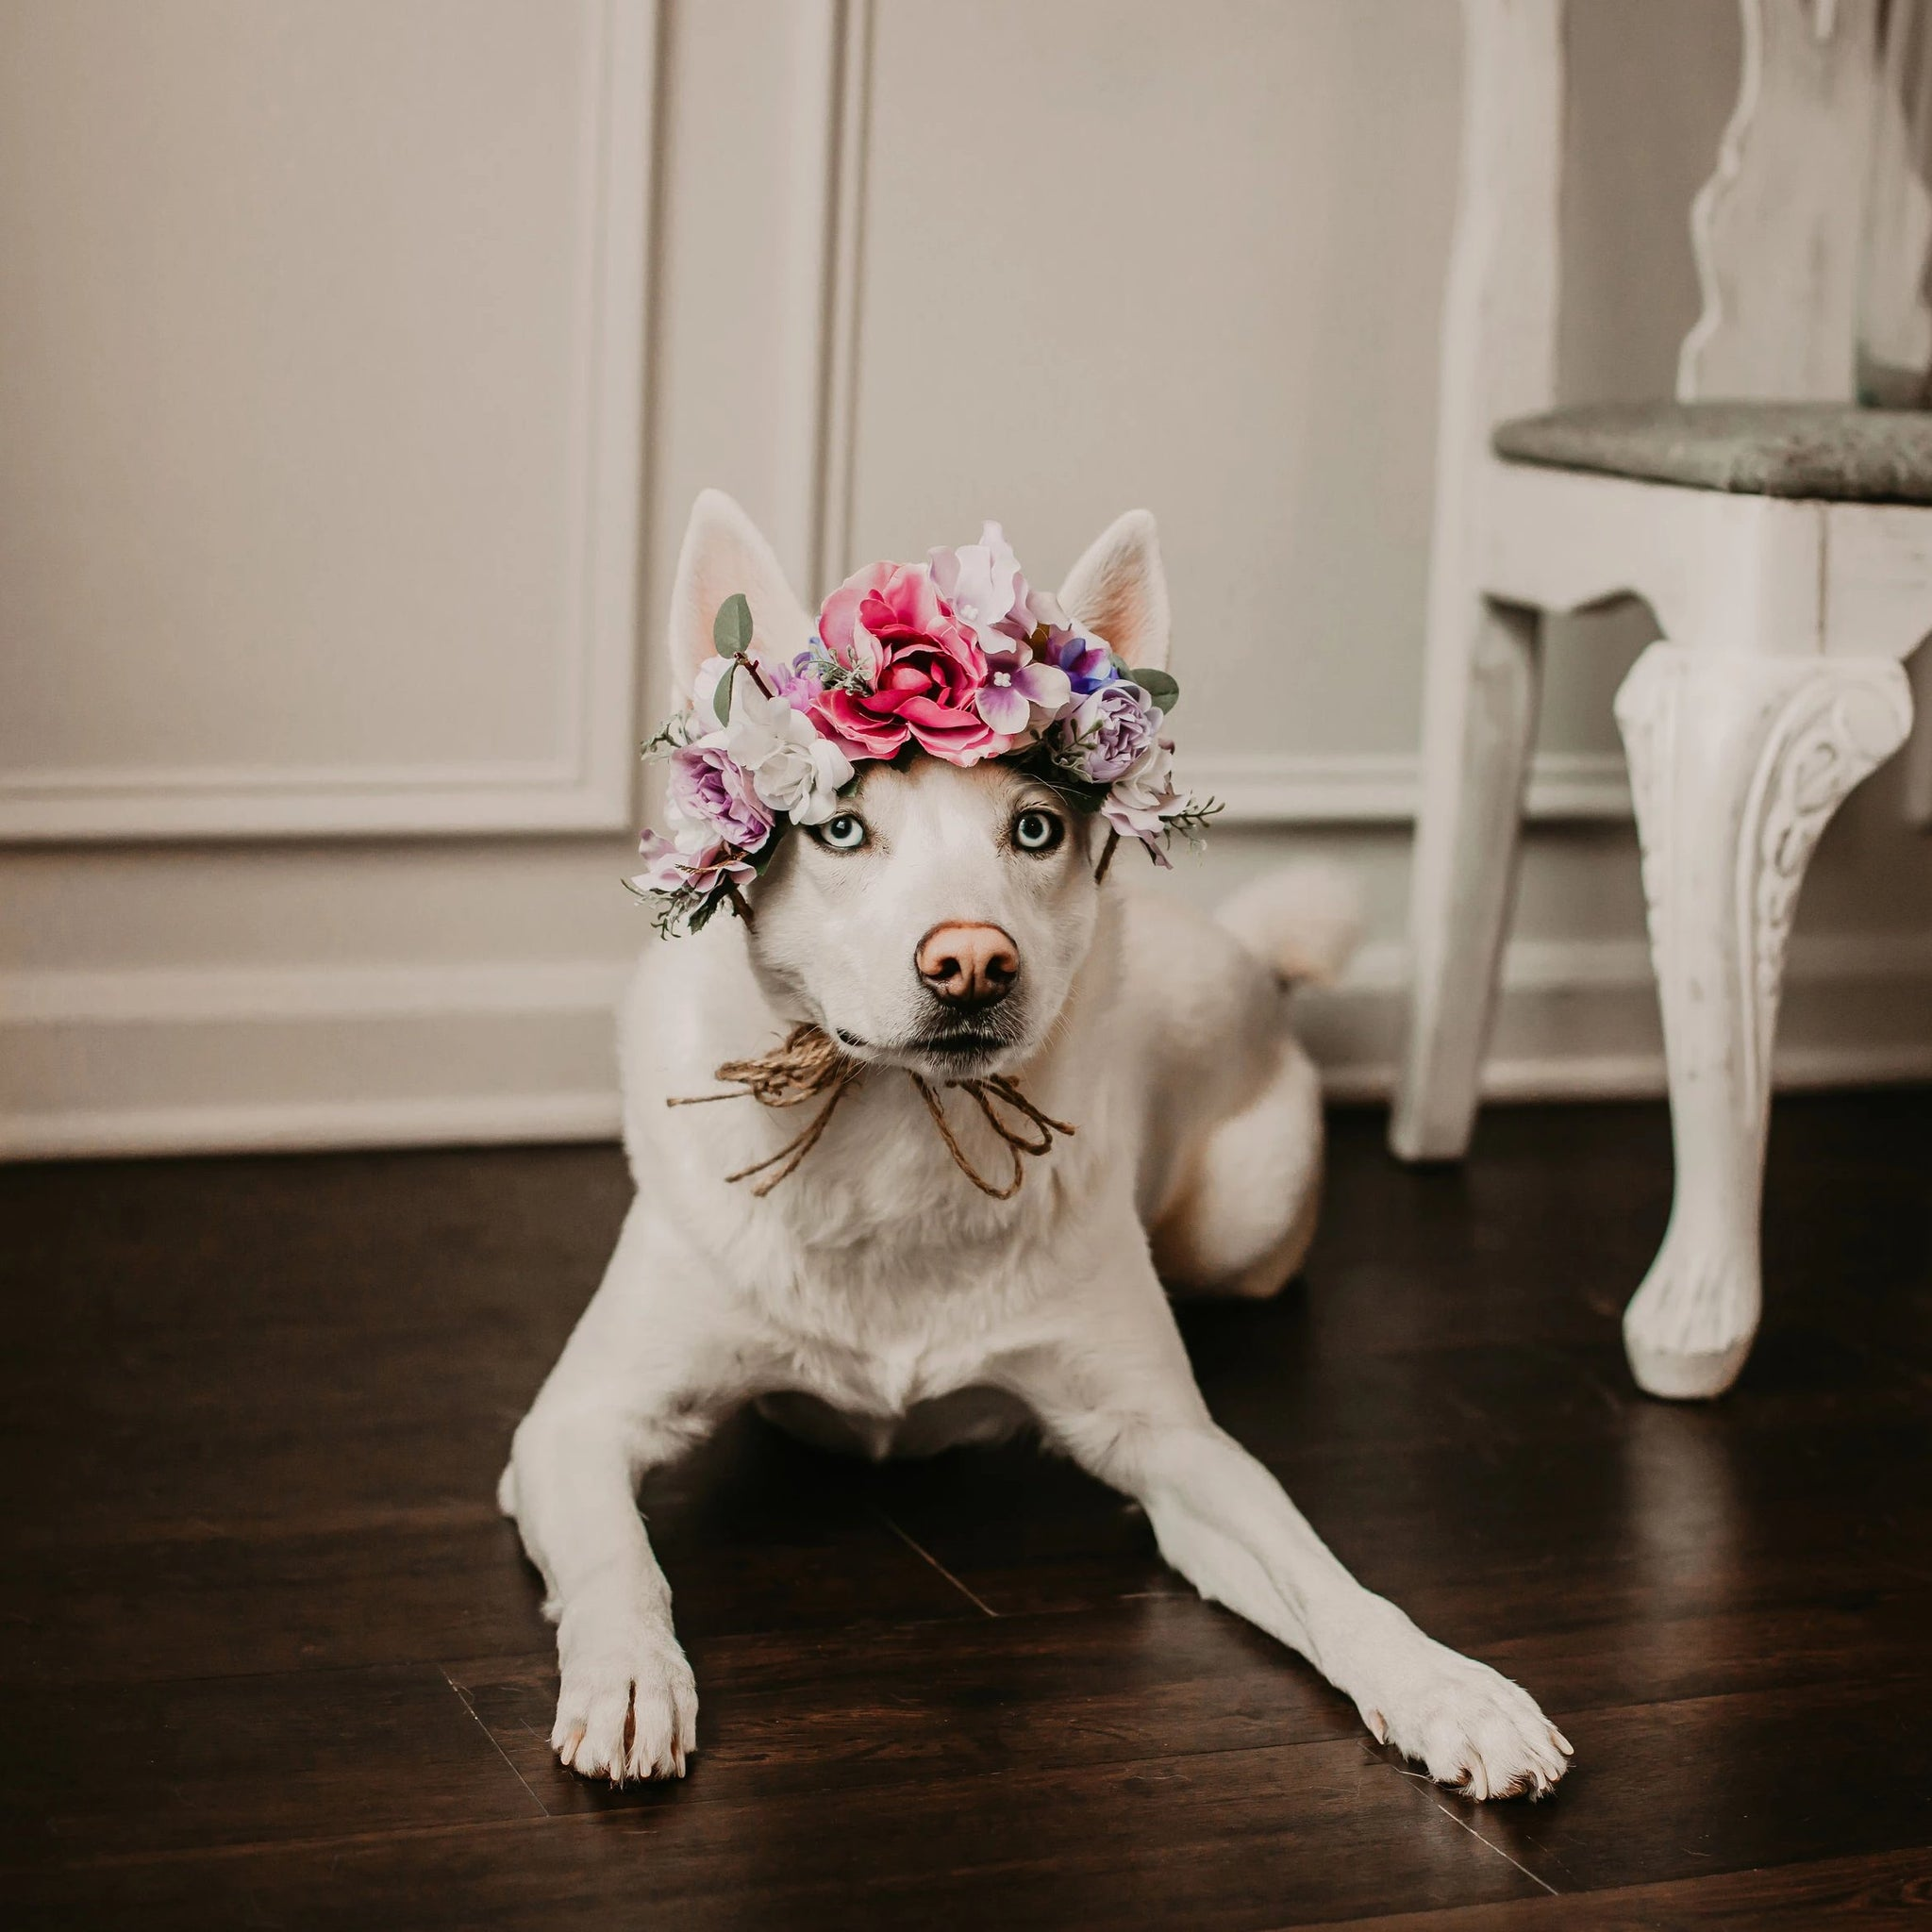 Pet Wedding, Custom Order Dog Floral Tiara, Dog Flower Crown, Dog Photo Shoot, Dog Wedding Flowers, Puppy Floral Crown, Ring Bearer Dog